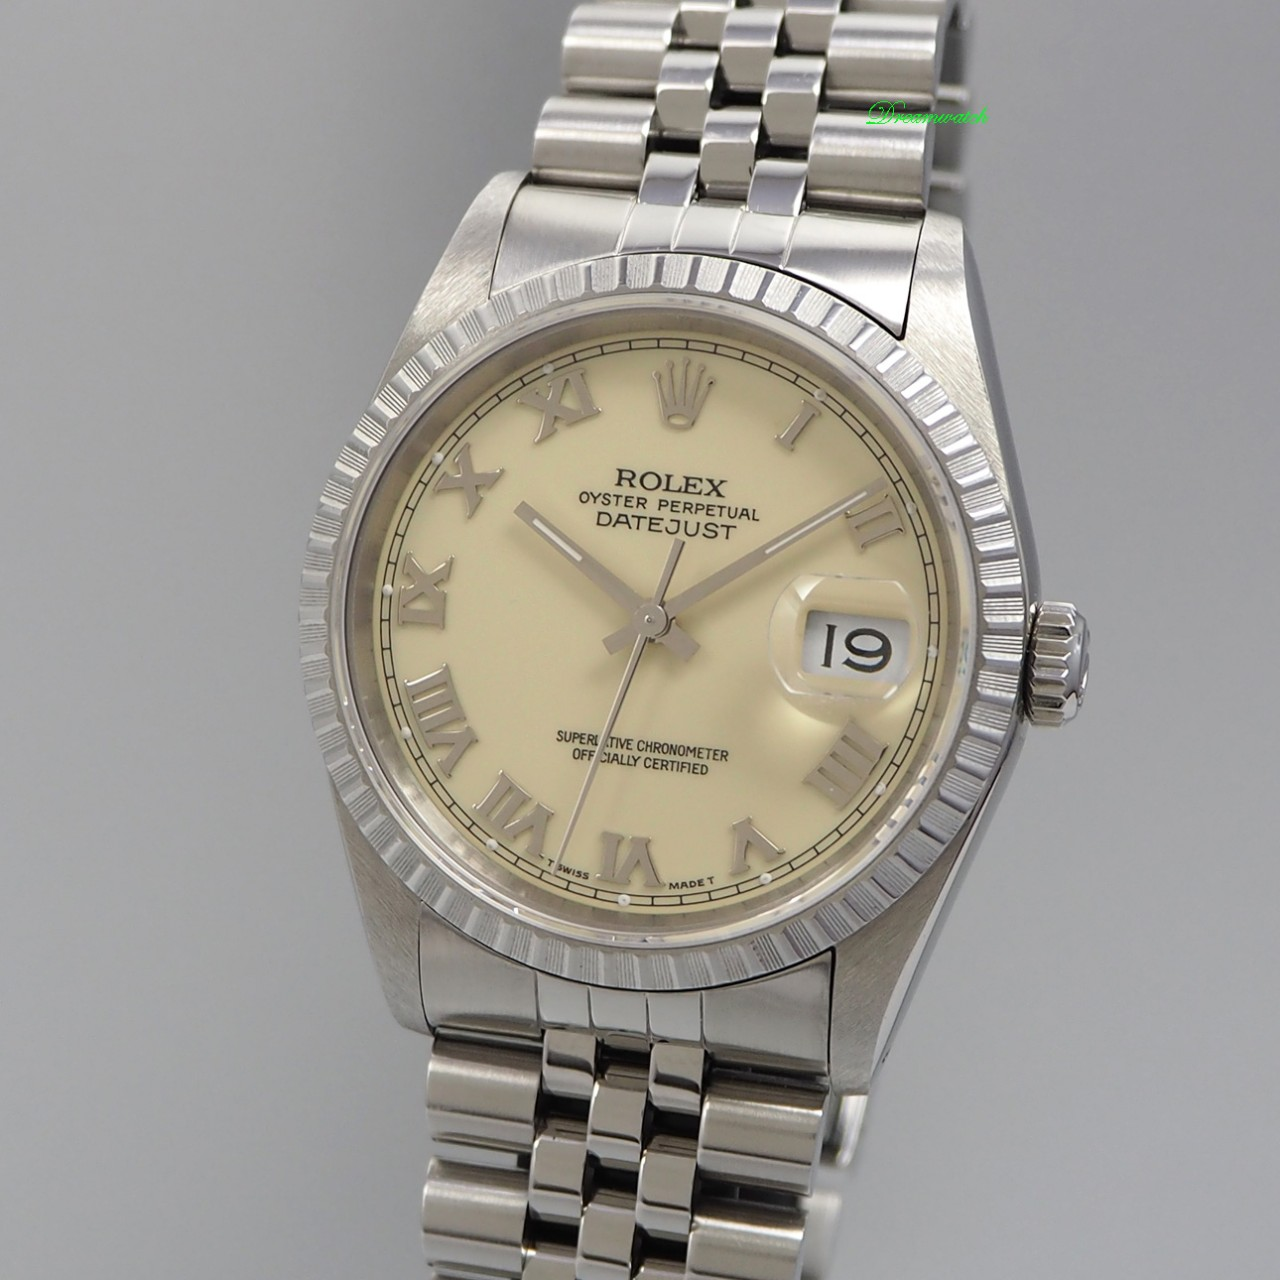 Rolex Oyster Perpetual Datejust 16220 Stahl/ Stahl, Box + orig. Papiere